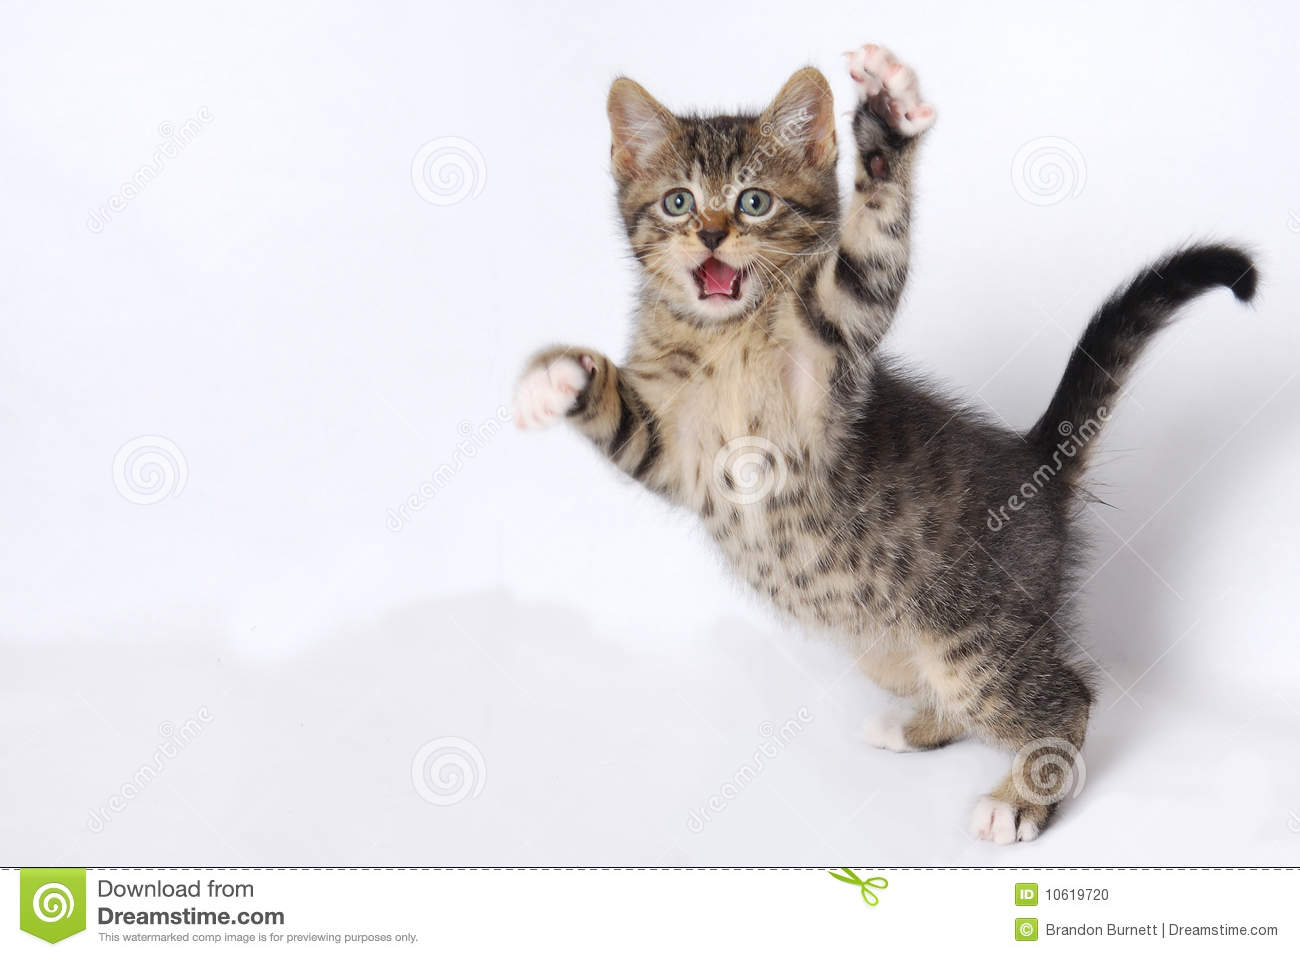 Cute Kittens Playing On White Background Stock Photo - Image: 10619720